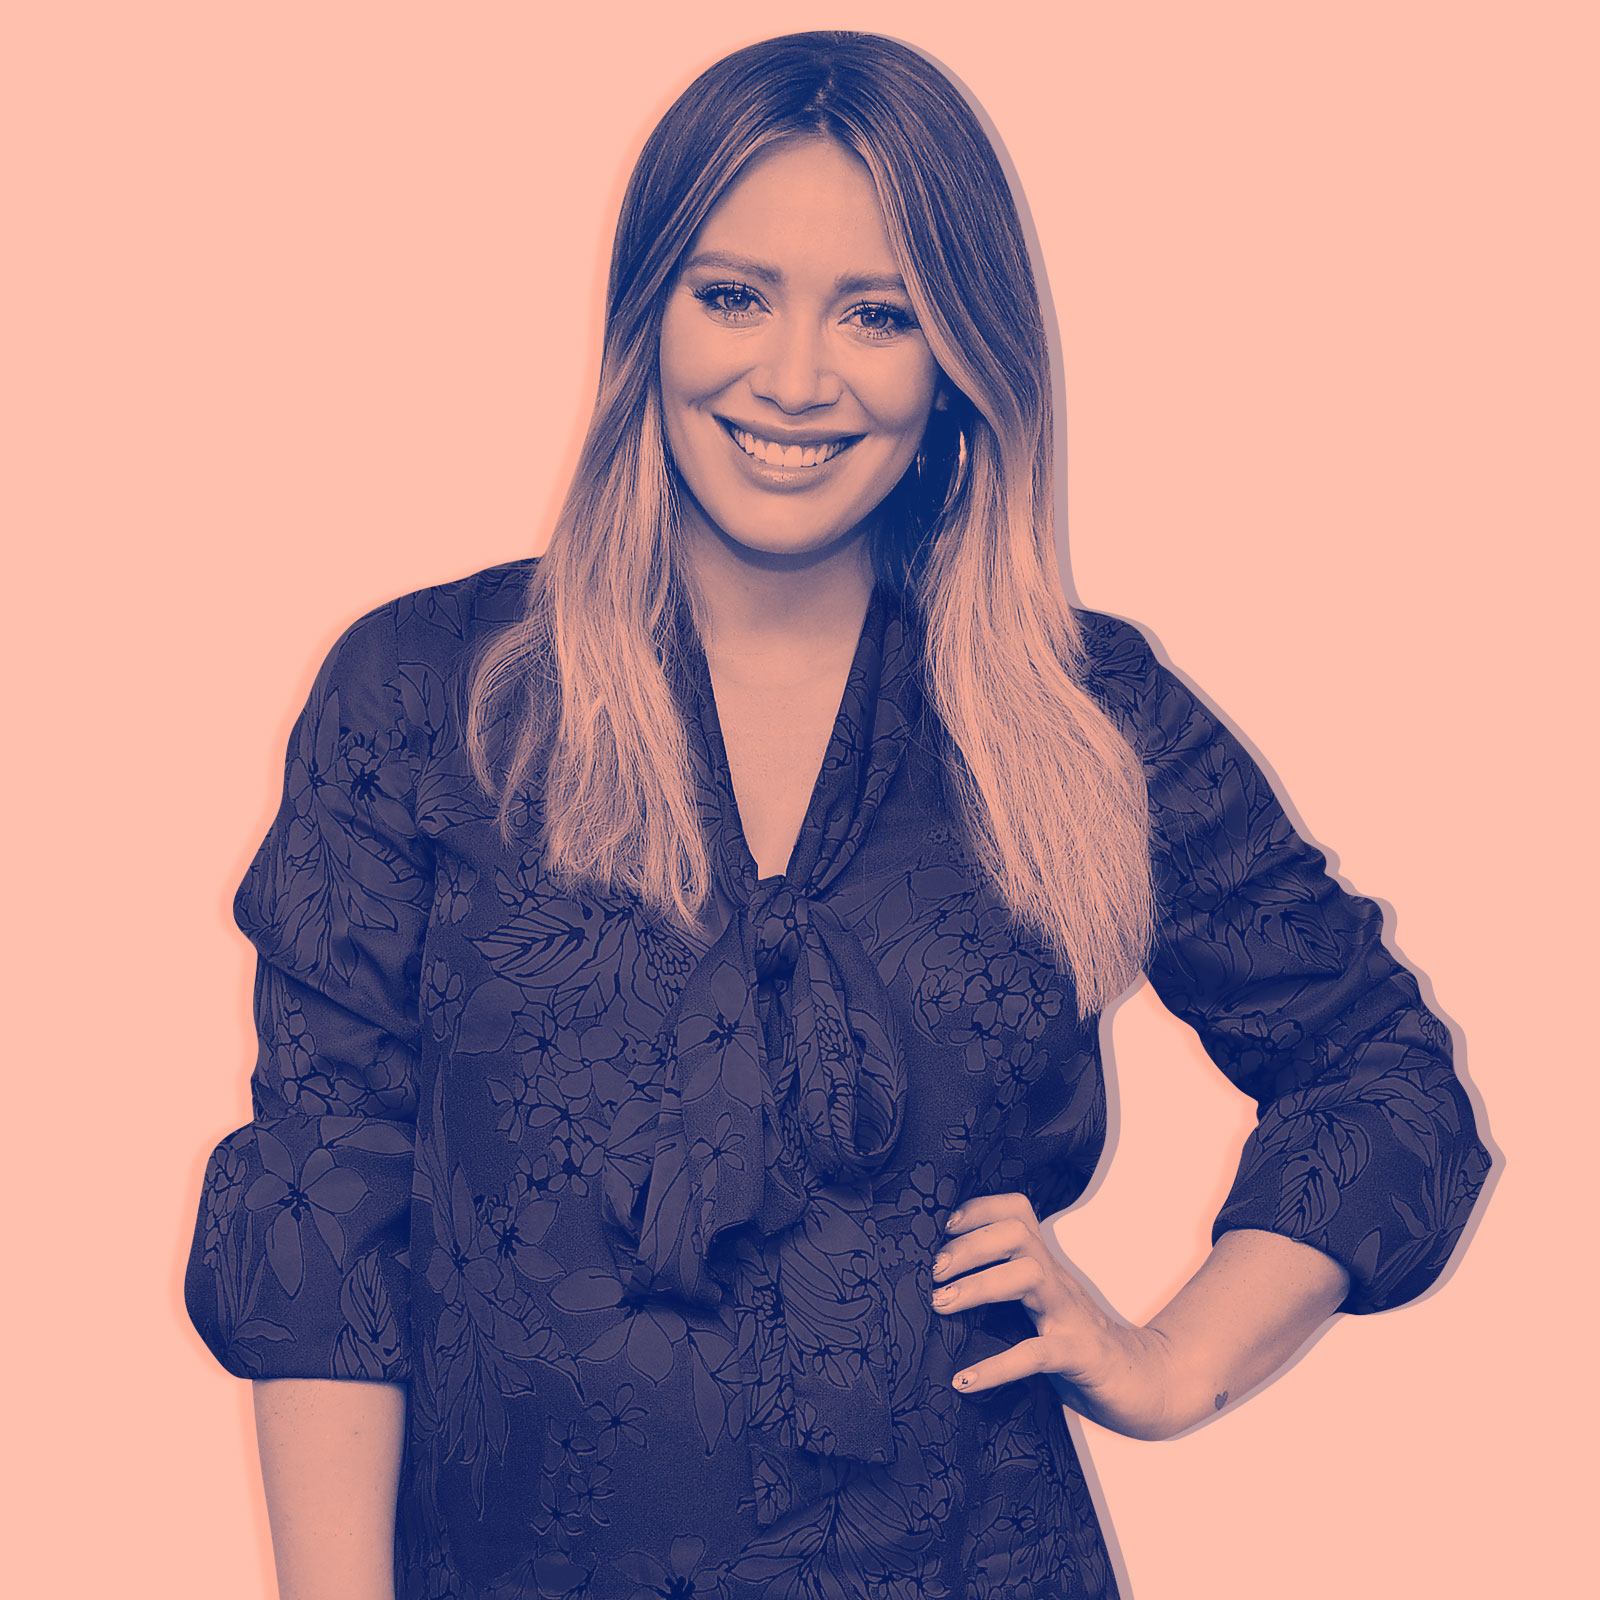 The One Piece of Advice Hilary Duff Would Give Her Younger Self